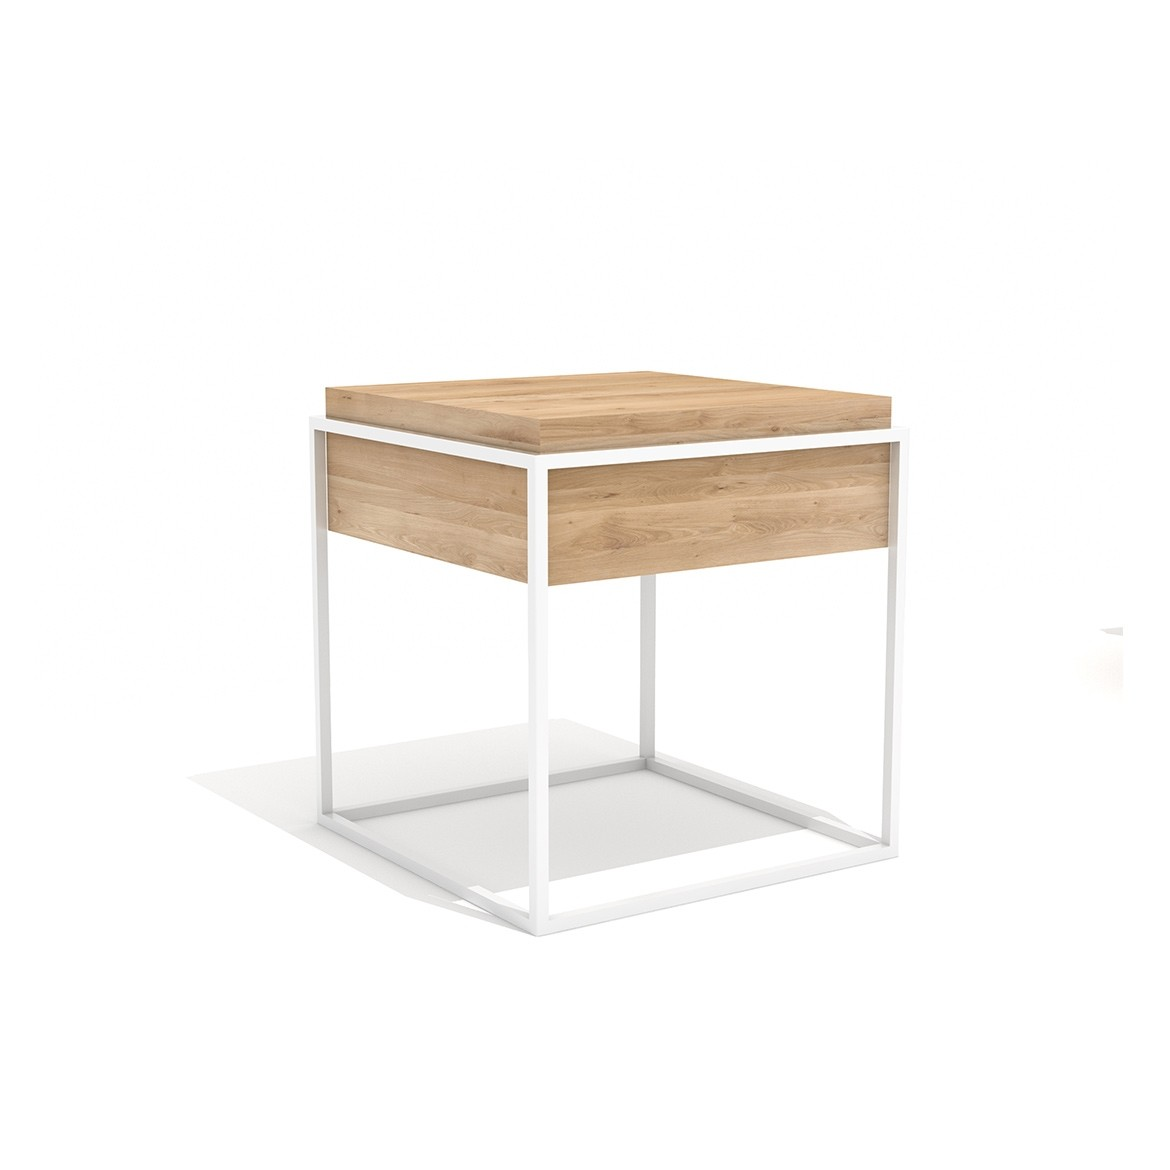 Ethnicraft Oak Monolit Side Tables M